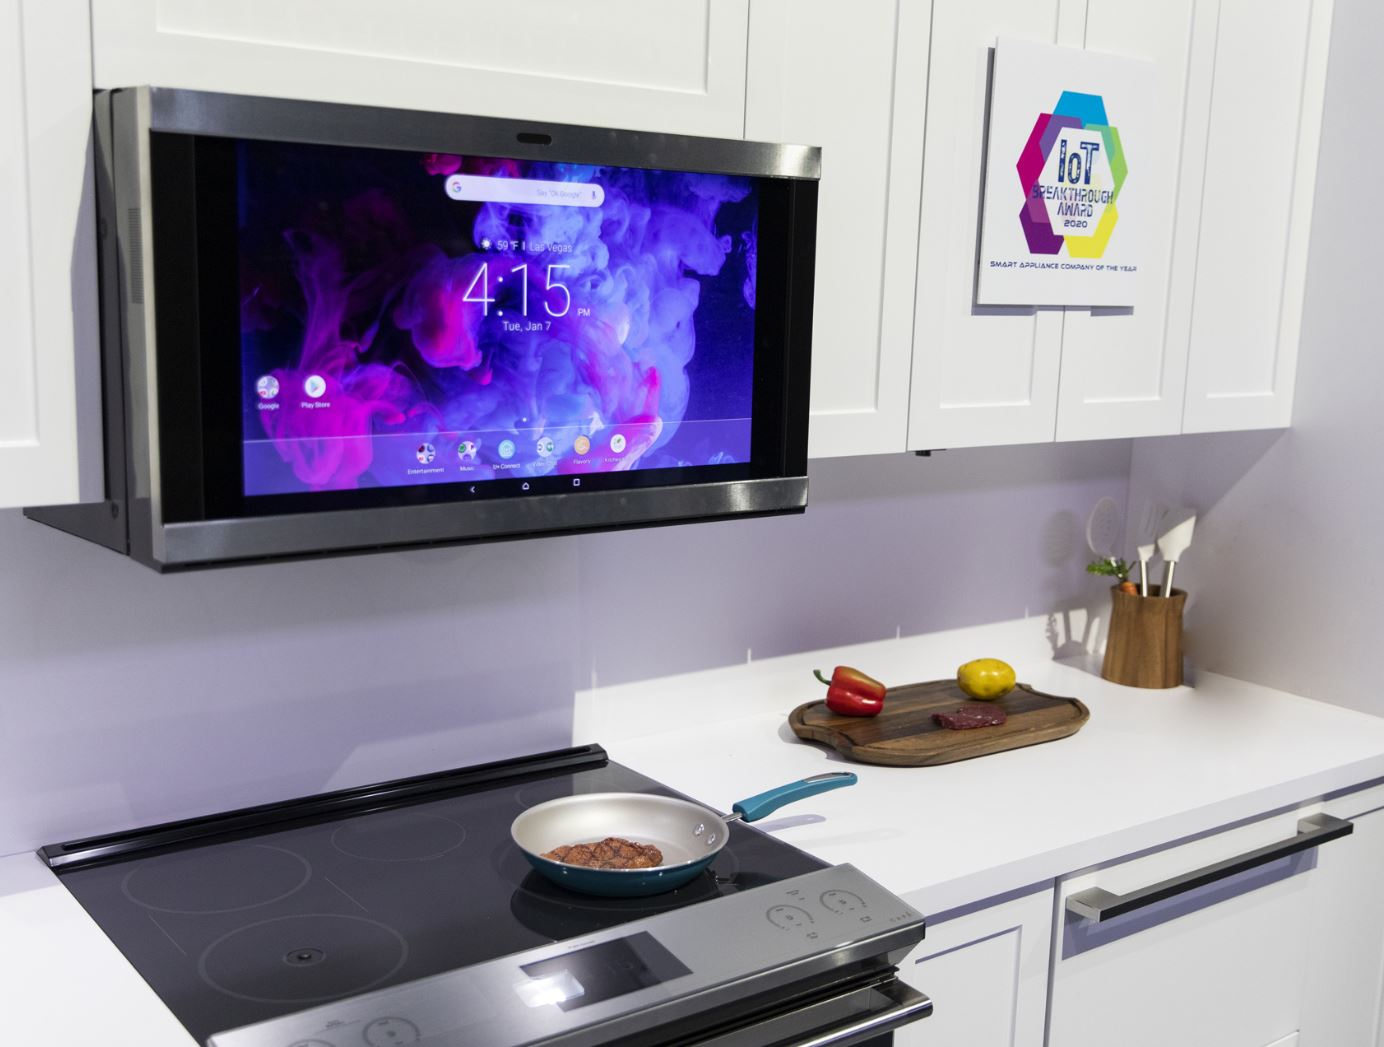 Smart Home Tech CES Las Vegas 07 Cooking While Streaming Hoey Team eXp Realty